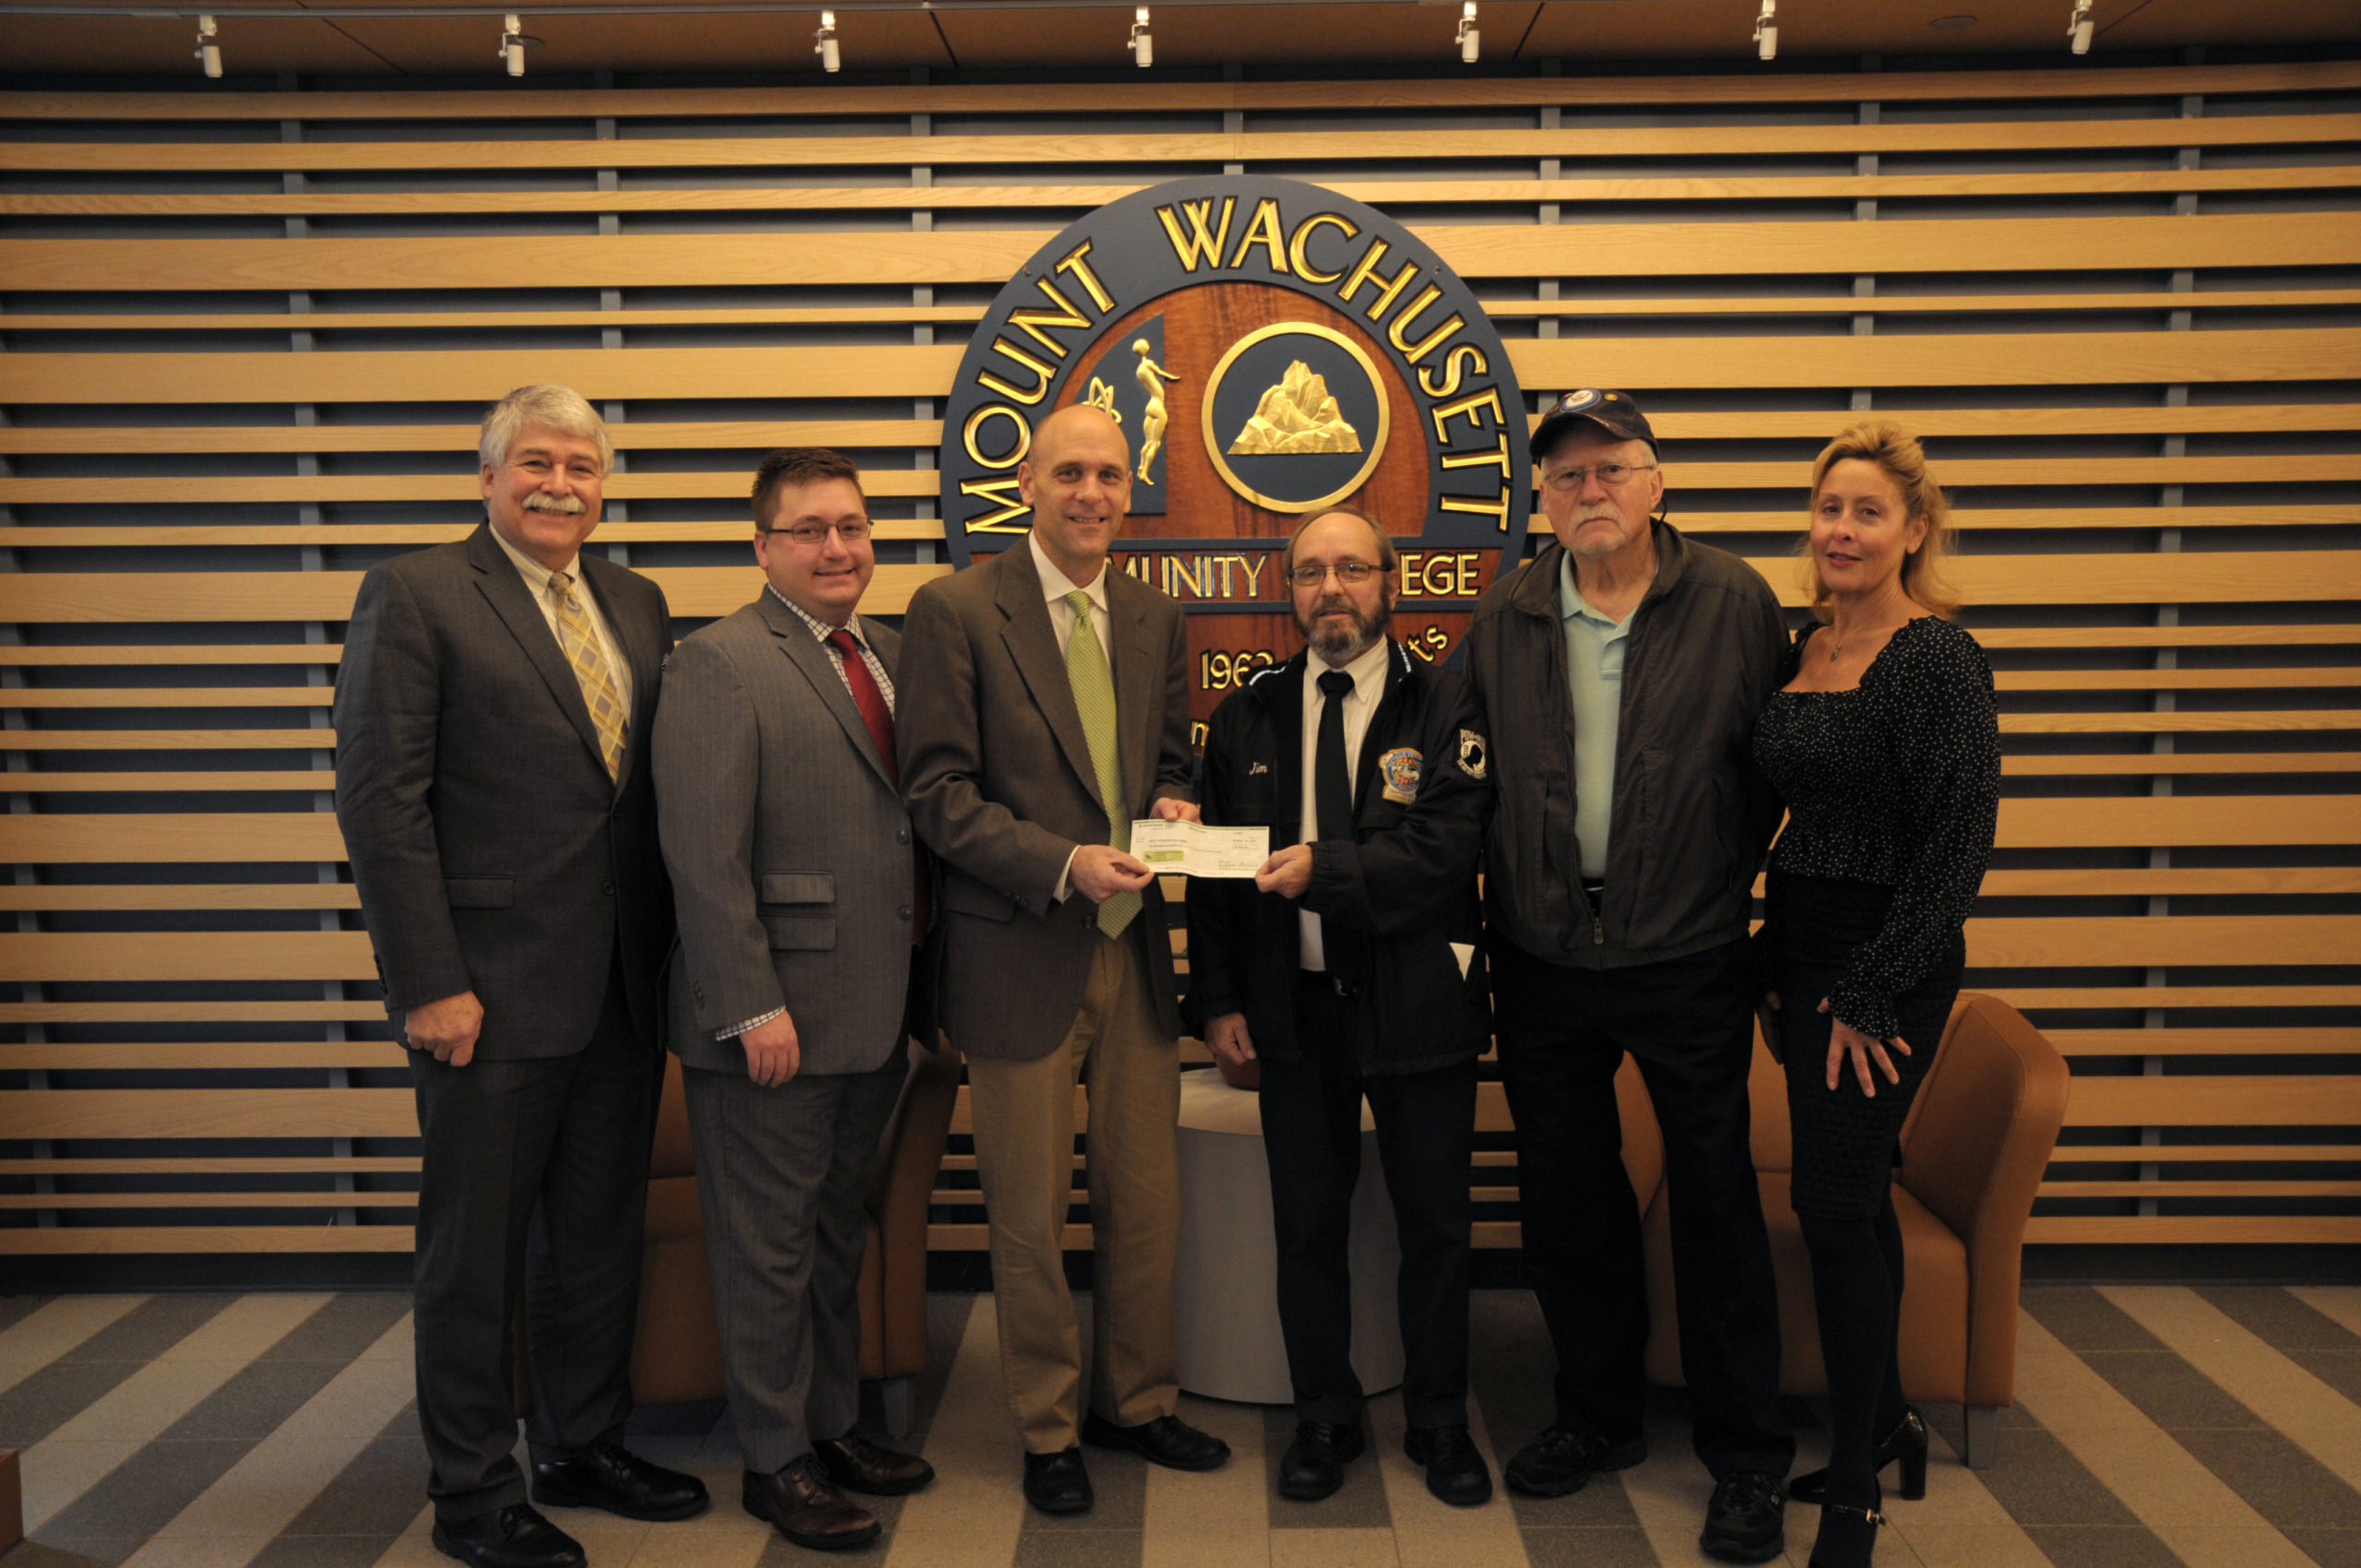 VVA Scholarship Check